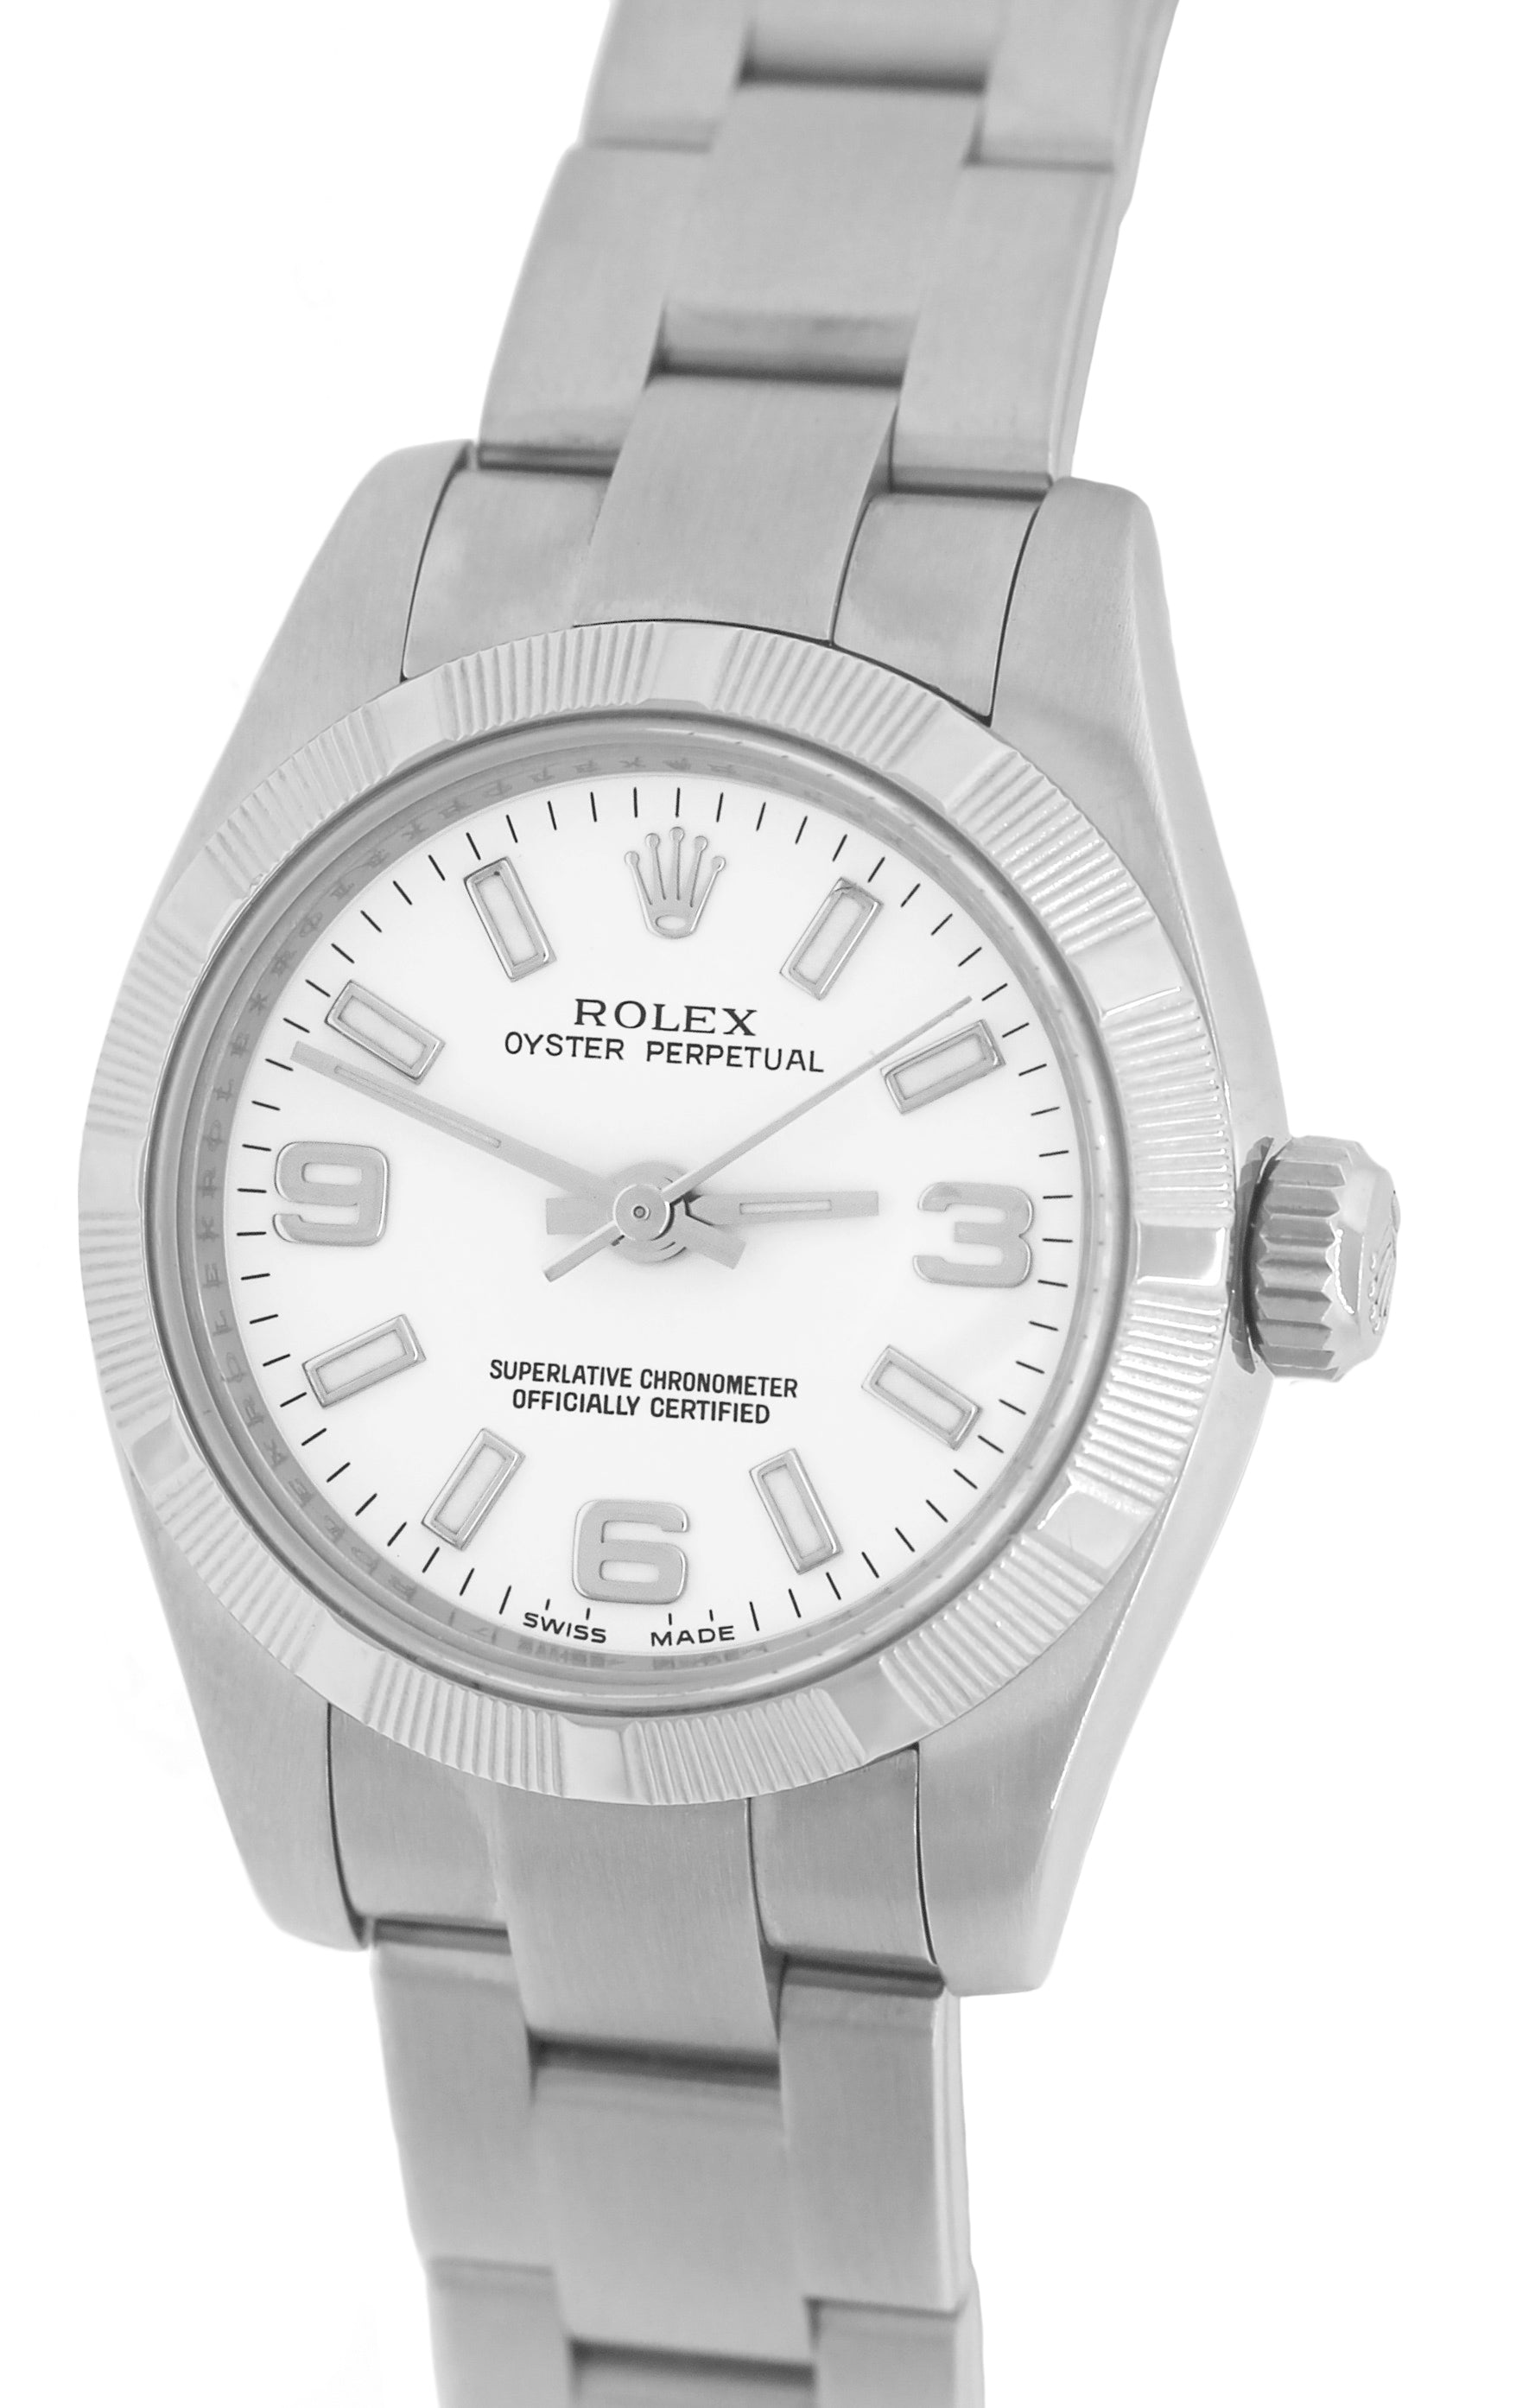 2008 ENGRAVED Ladies Rolex Oyster Perpetual 176210 White 26mm Oyster Watch